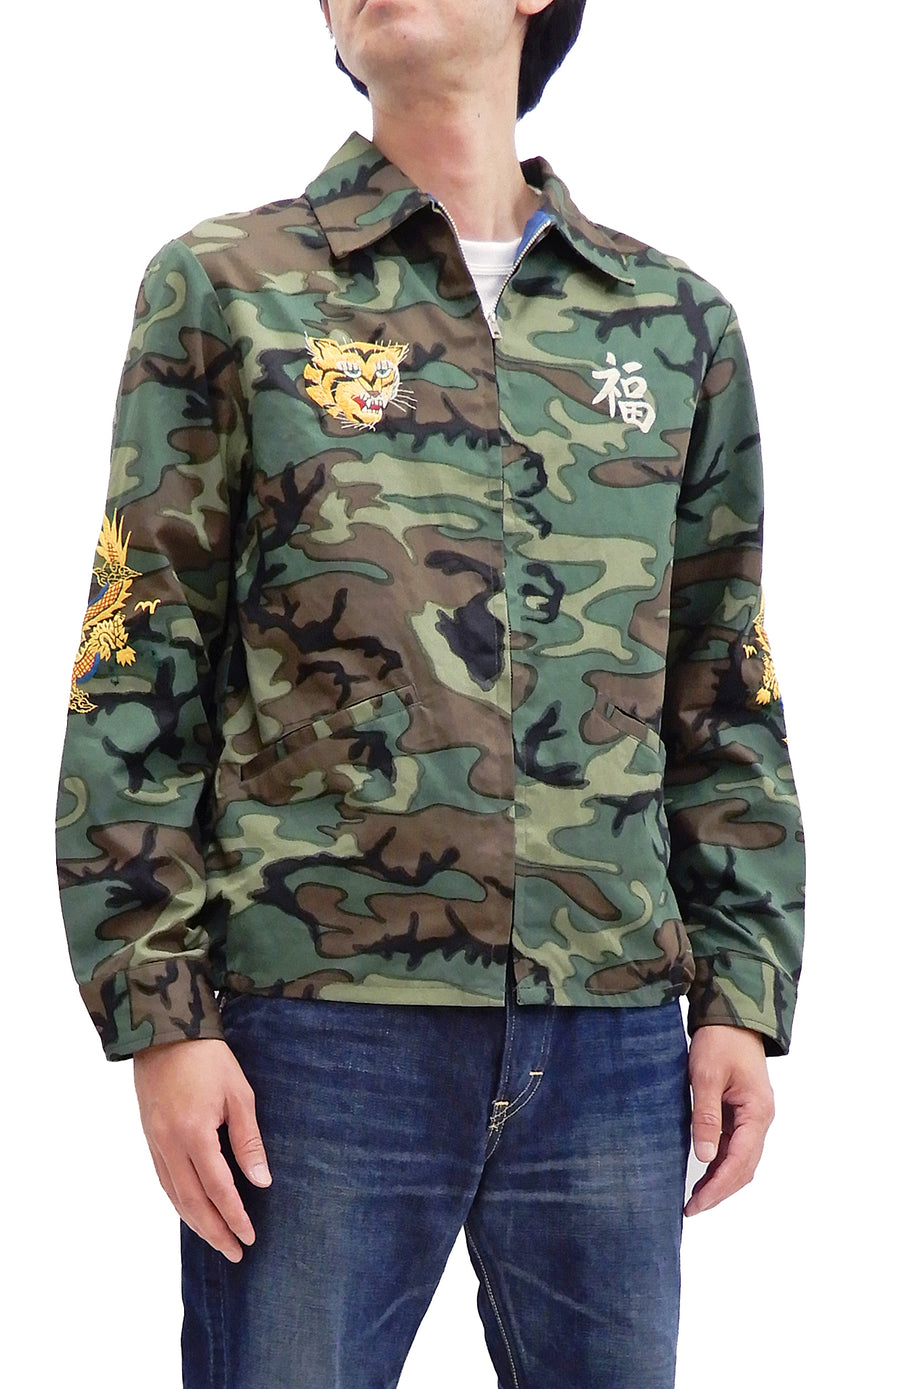 Tailor Toyo Vietnam Tour Jacket Men's Woodland Camouflage Embroidered Jacket TT14643